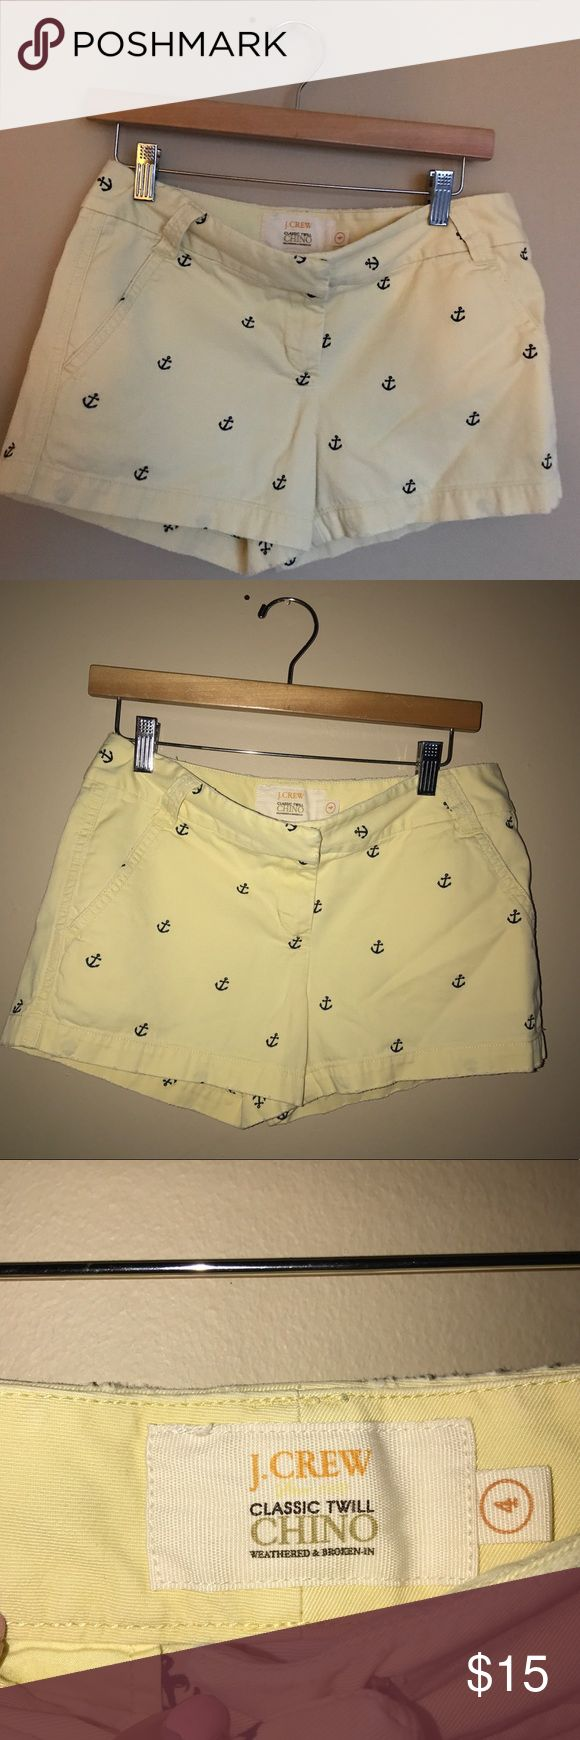 J Crew classic chino weather yellow anchor shorts J Crew classic chino weather yellow anchor shorts. Classic 12 weathered size for chino shorts from J.Crew. Excellent condition with anchor detail in one sleep back pocket look.  Perfect for boating, we can wear or casual date night. I love reasonable offers, bundle and save! I ship same or next day from Ohio 💌 J. Crew Shorts